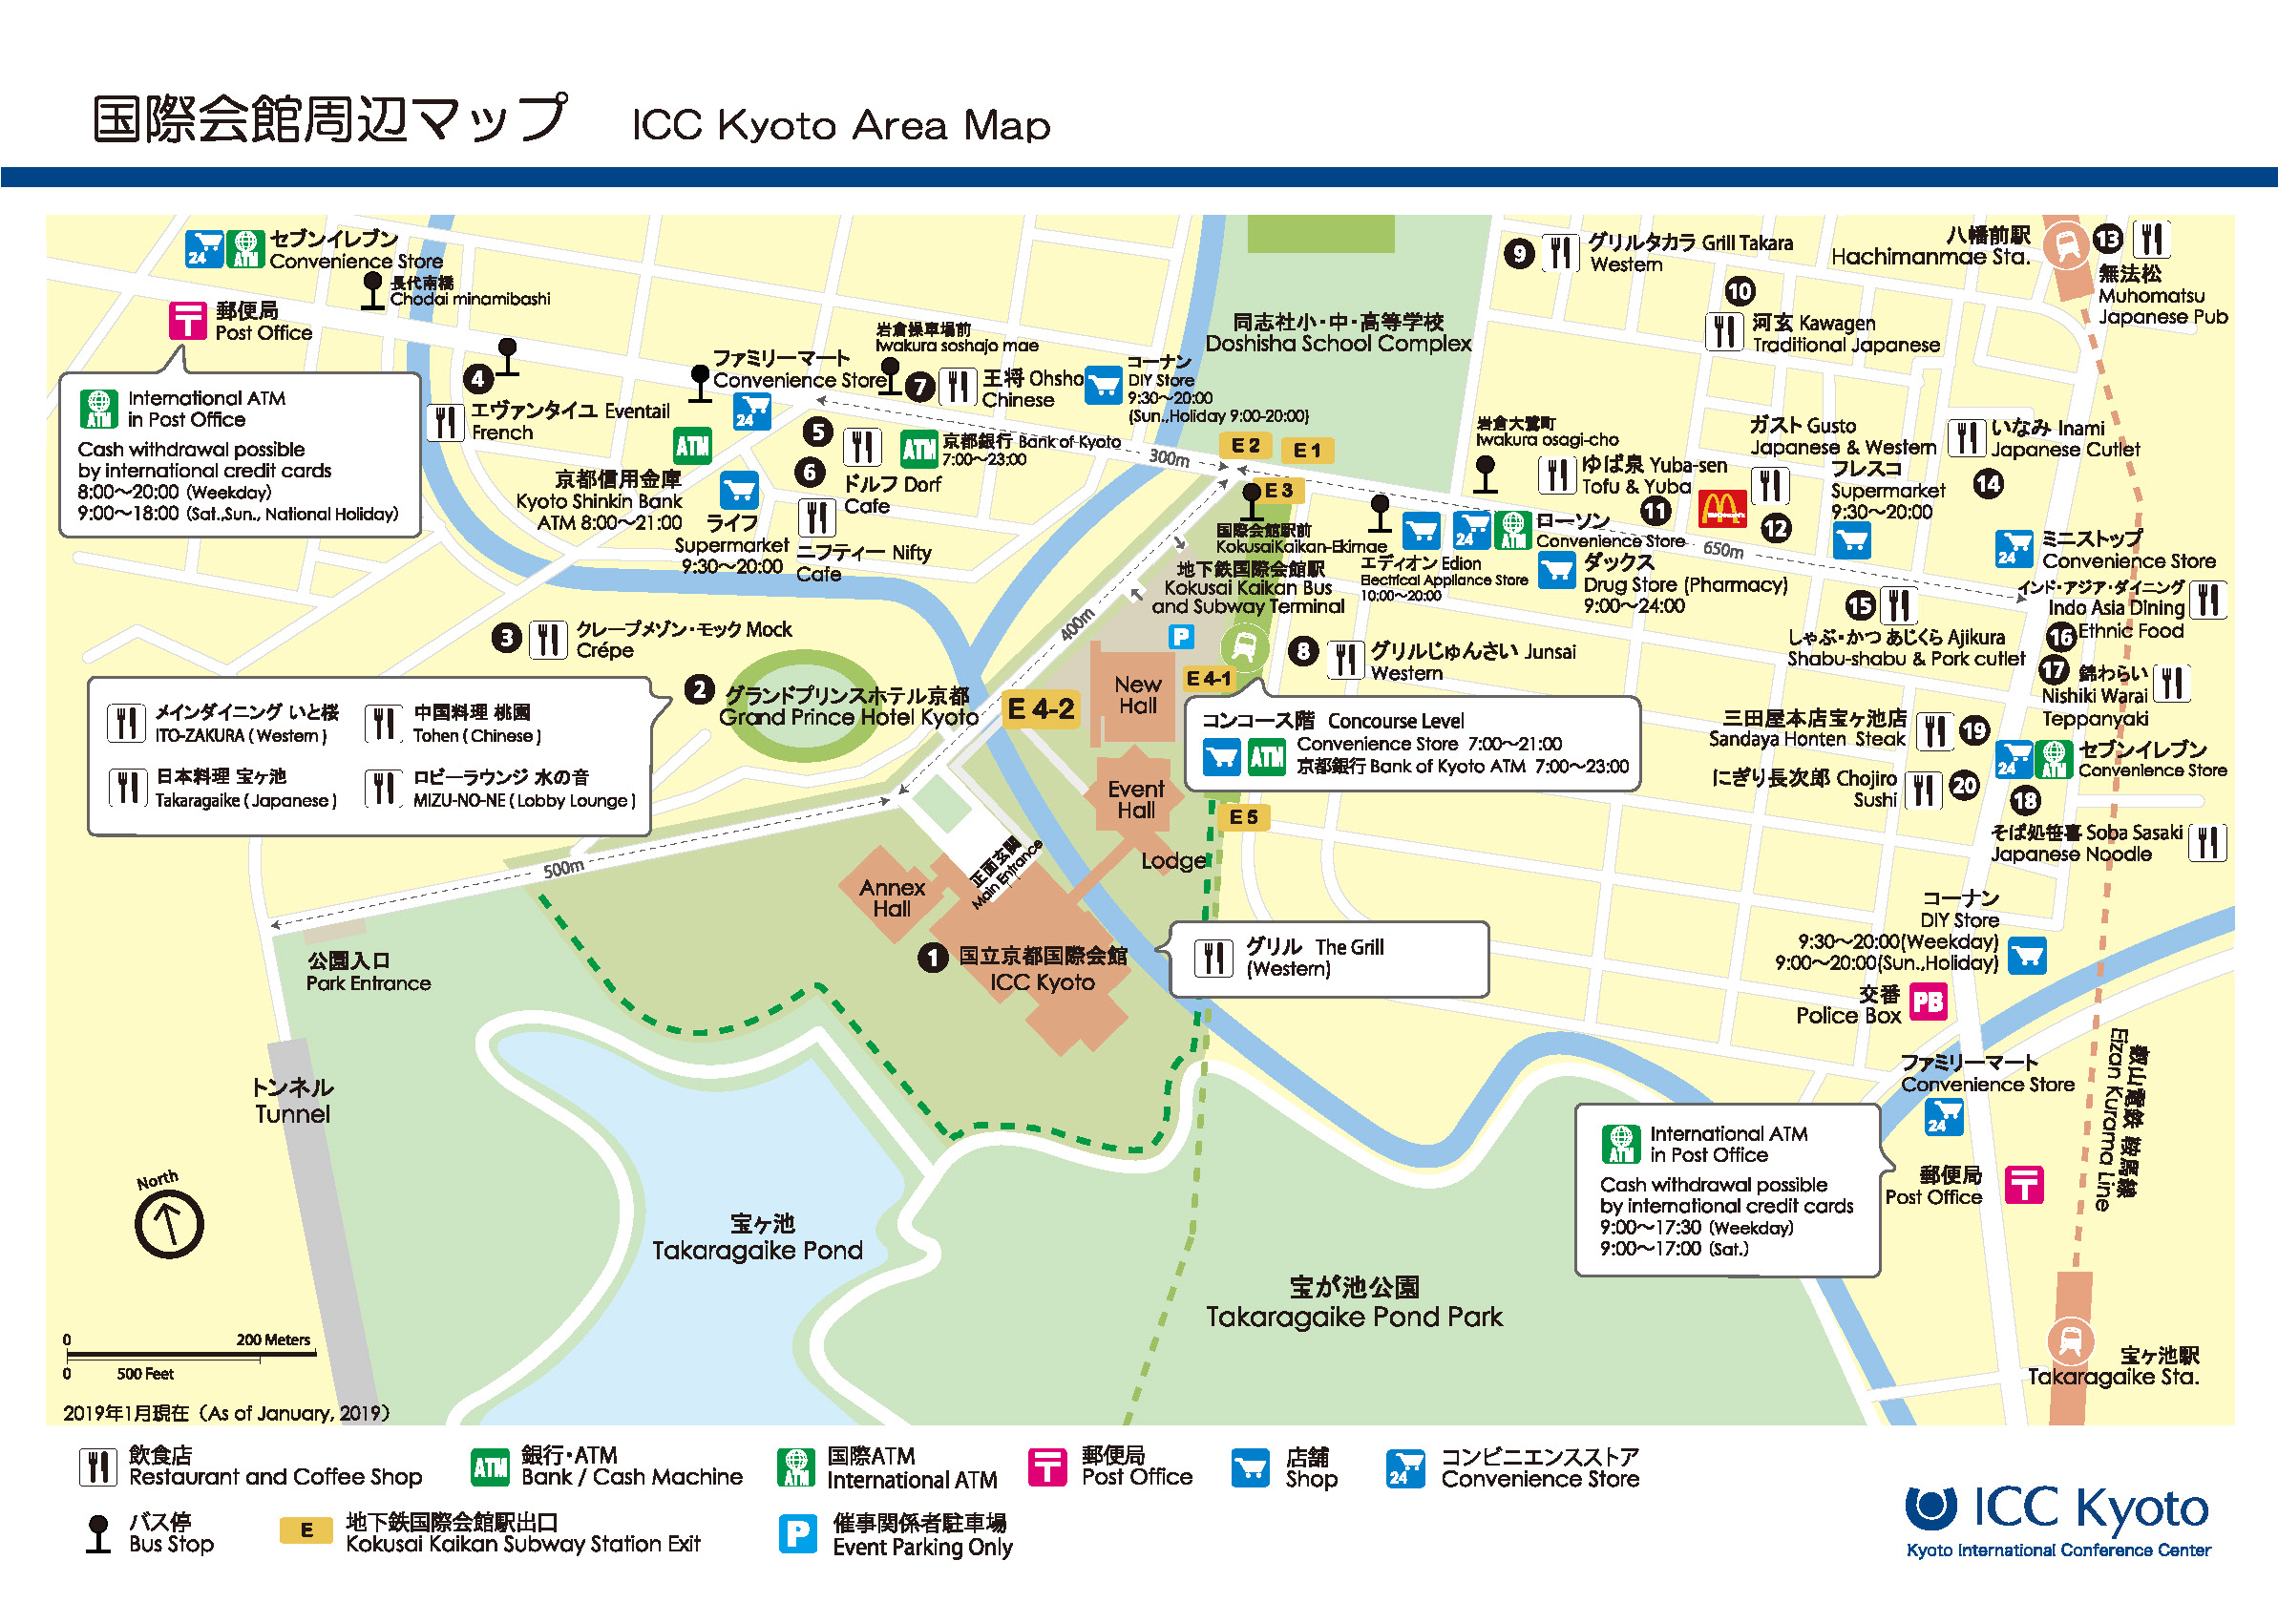 Guide around ICC Kyoto Kyoto International Conference Center